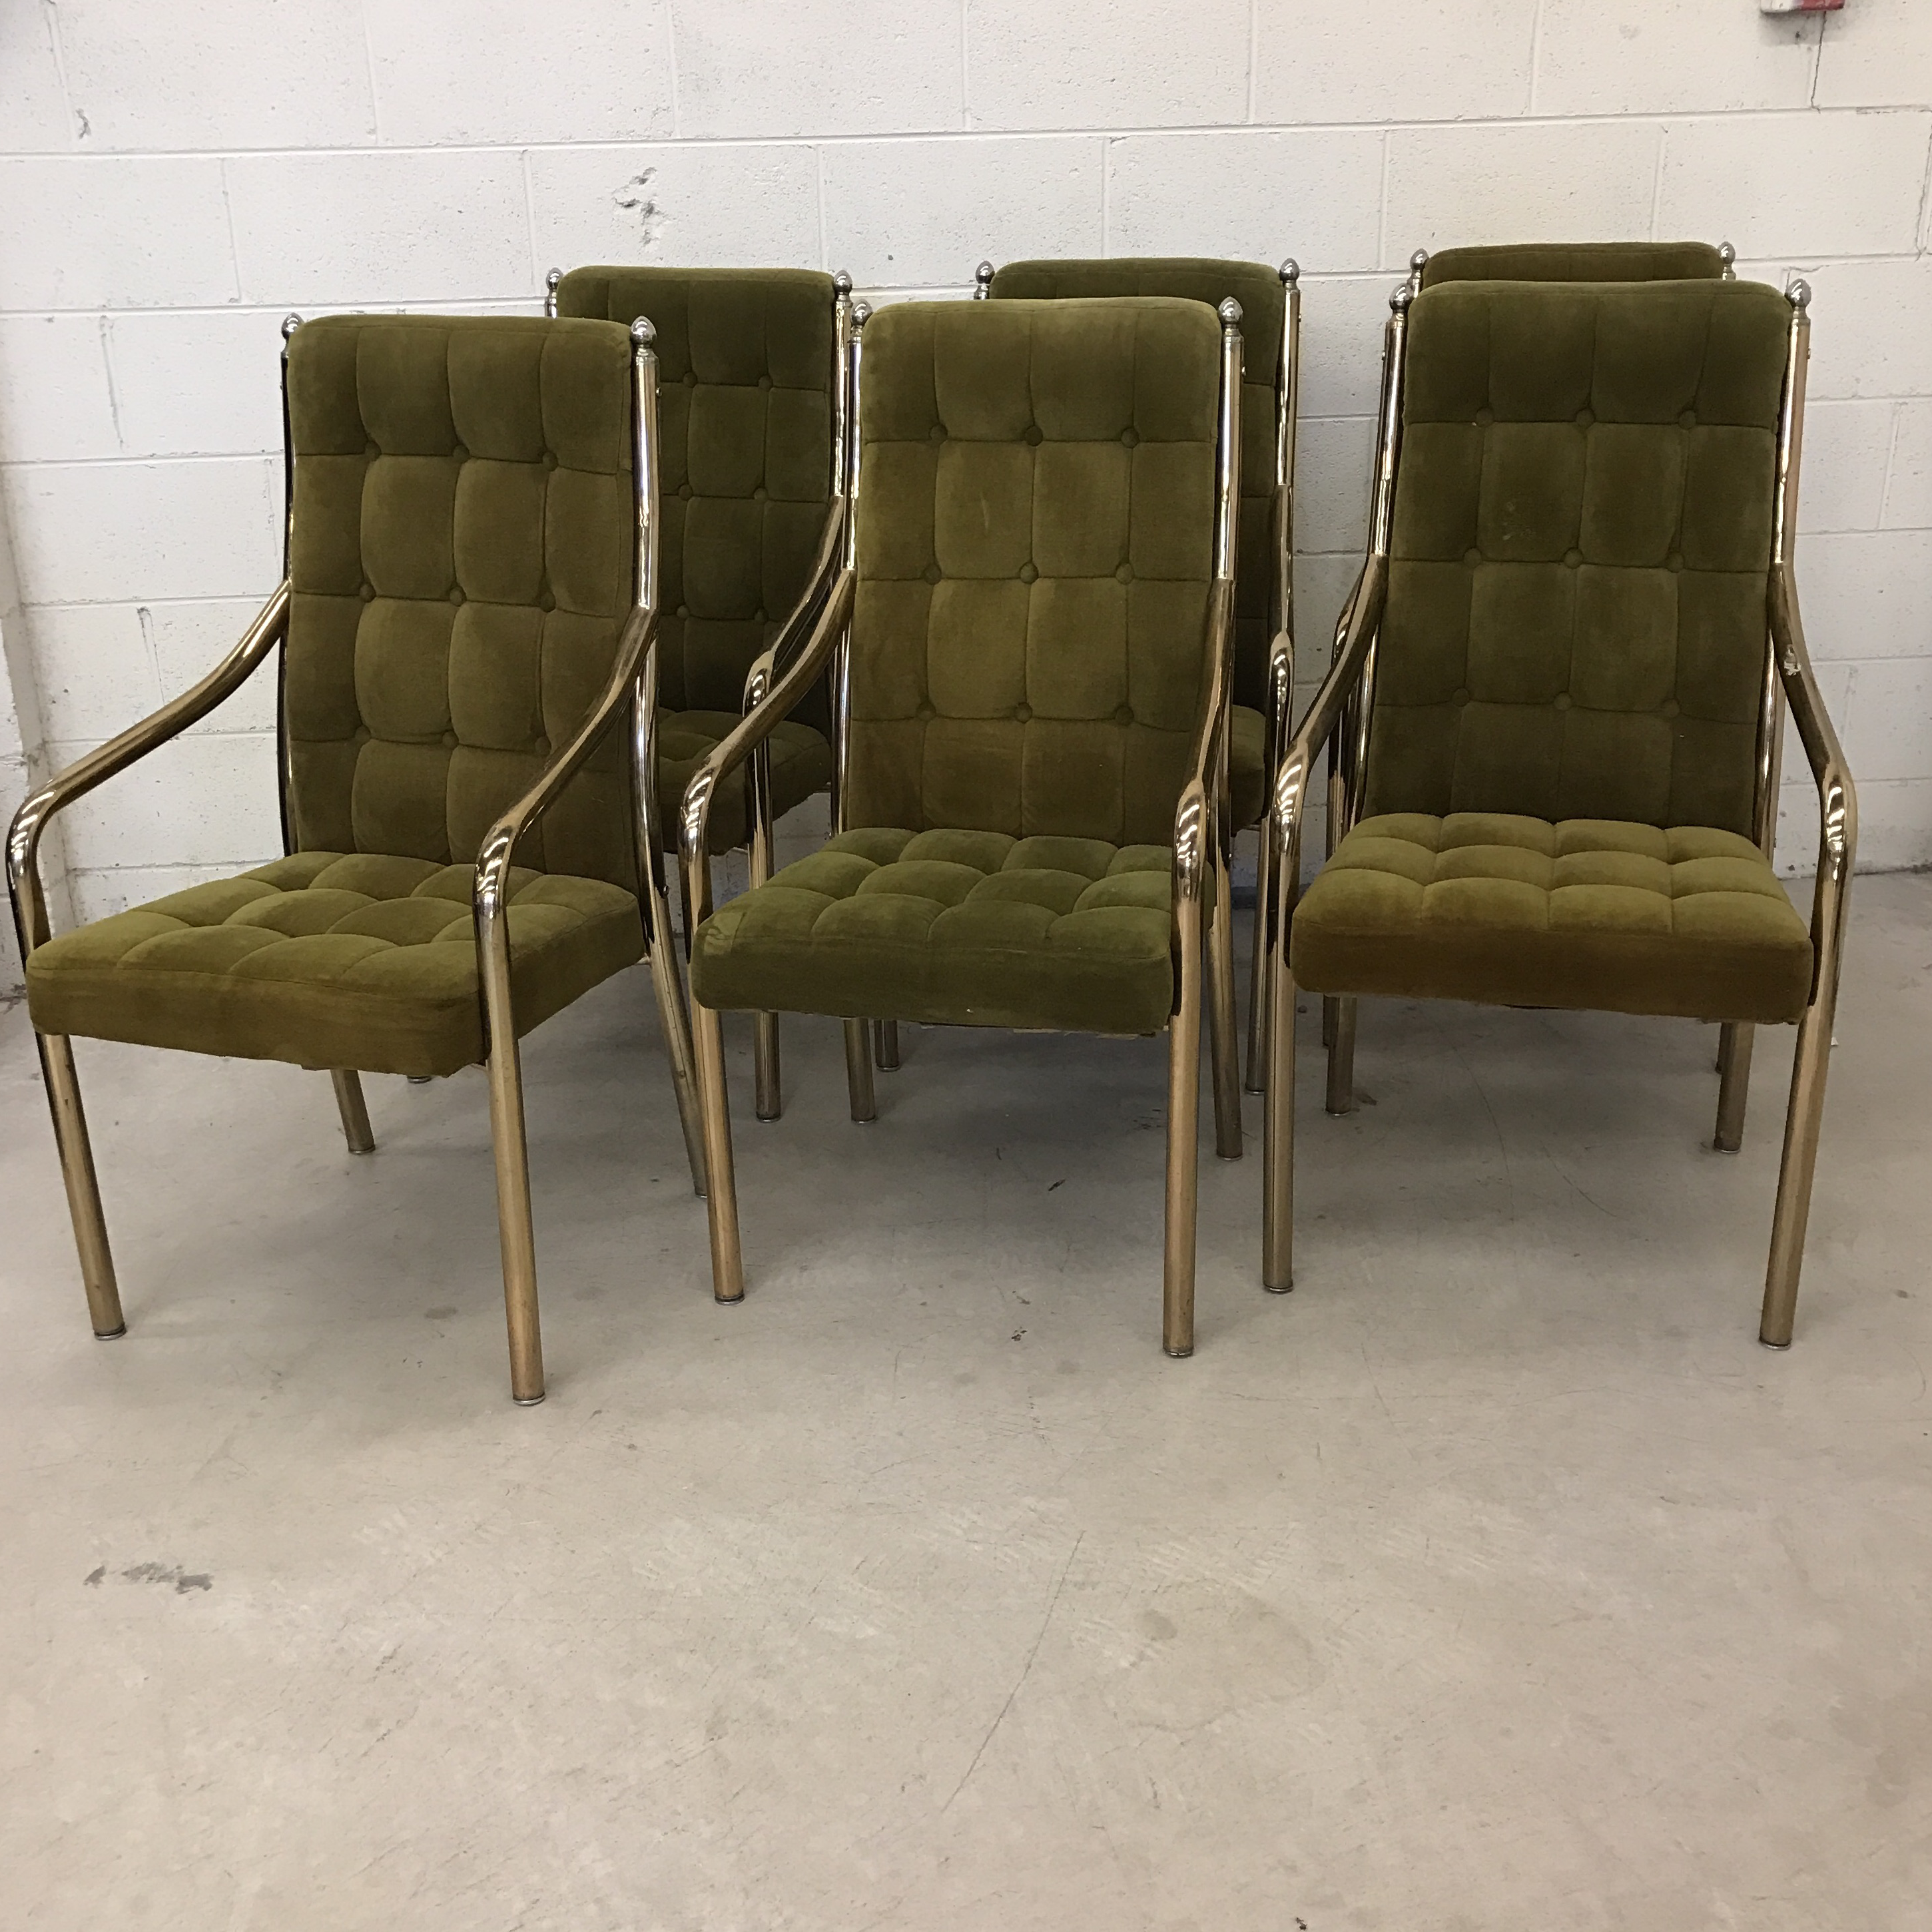 Great Chromcraft Green Velvet U0026 Brass Dining Chairs   Set Of 6   Image 2 Of 11